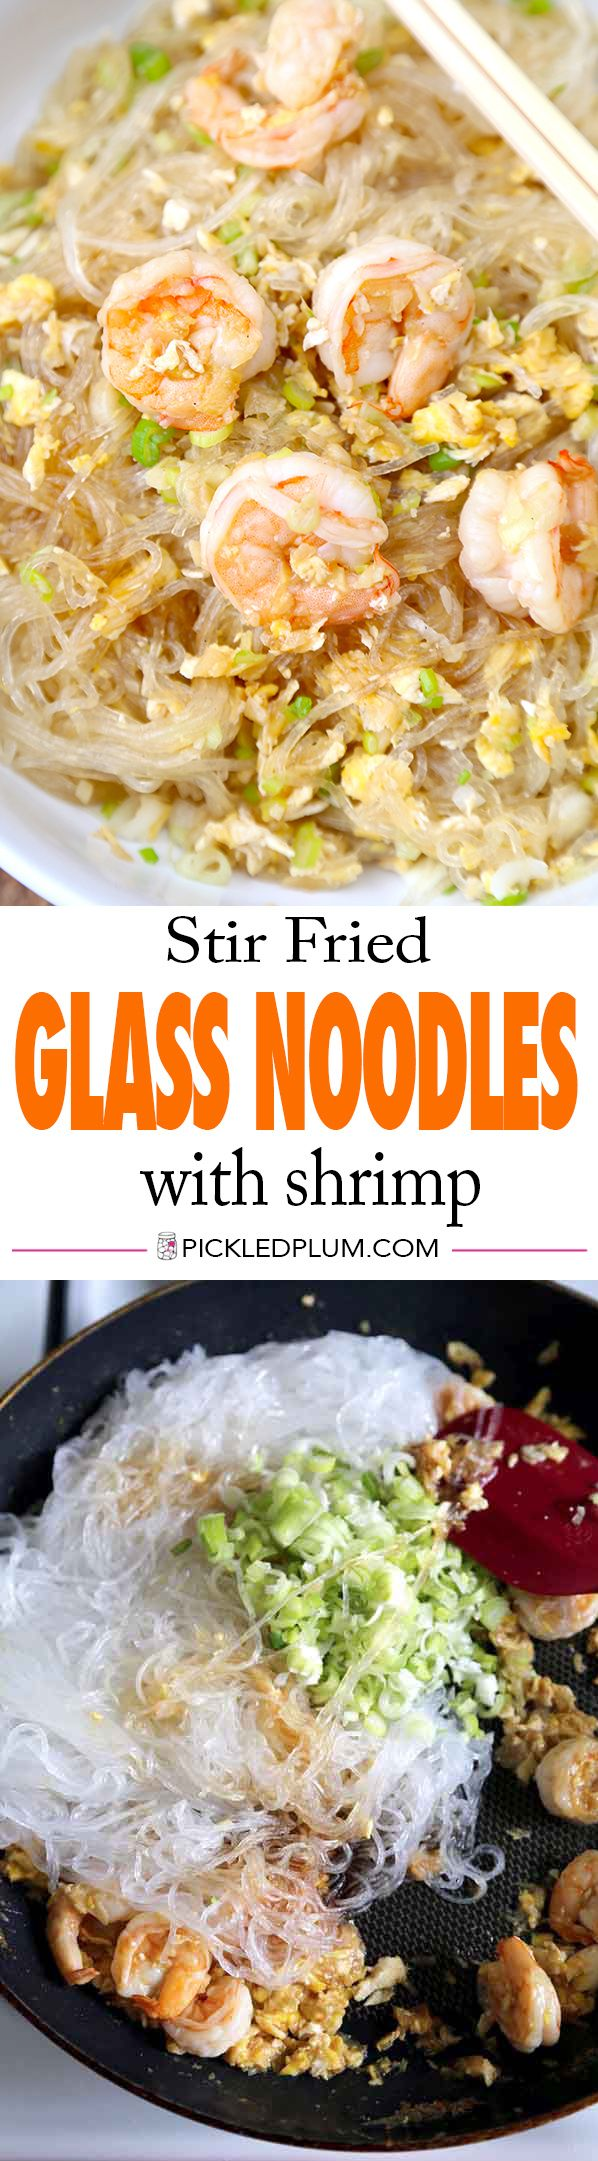 Stir Fried Glass Noodles with Shrimp and Egg - Quick and Easy Recipe! http://www.pickledplum.com/stir-fried-glass-noodles-with-shrimp/